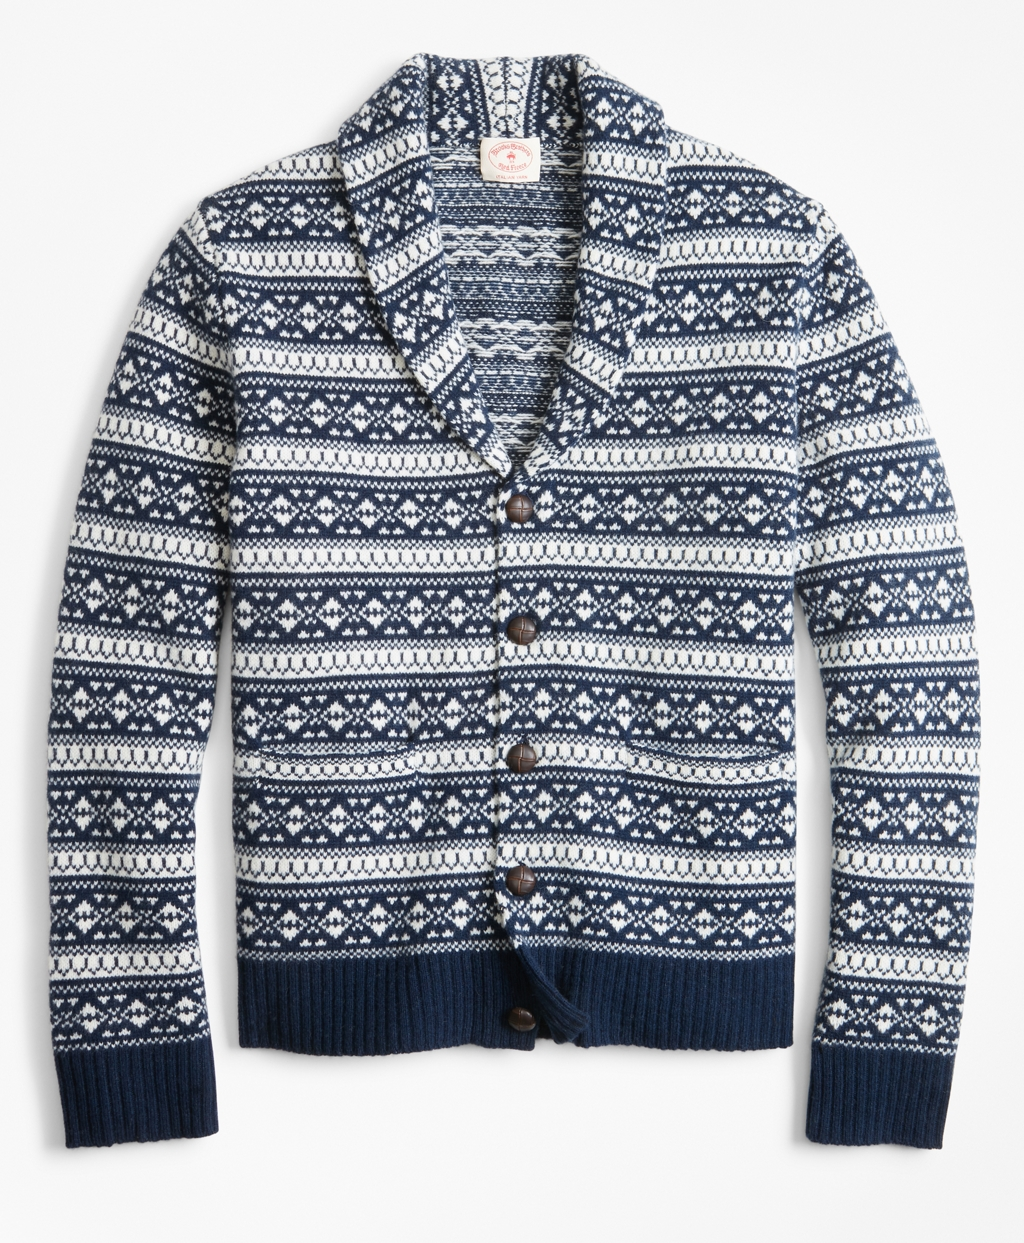 Men's Vintage Sweaters – 1920s to 1960s Retro Jumpers Brooks Brothers Mens Fair Isle Wool-Blend Shawl-Collar Cardigan $128.00 AT vintagedancer.com